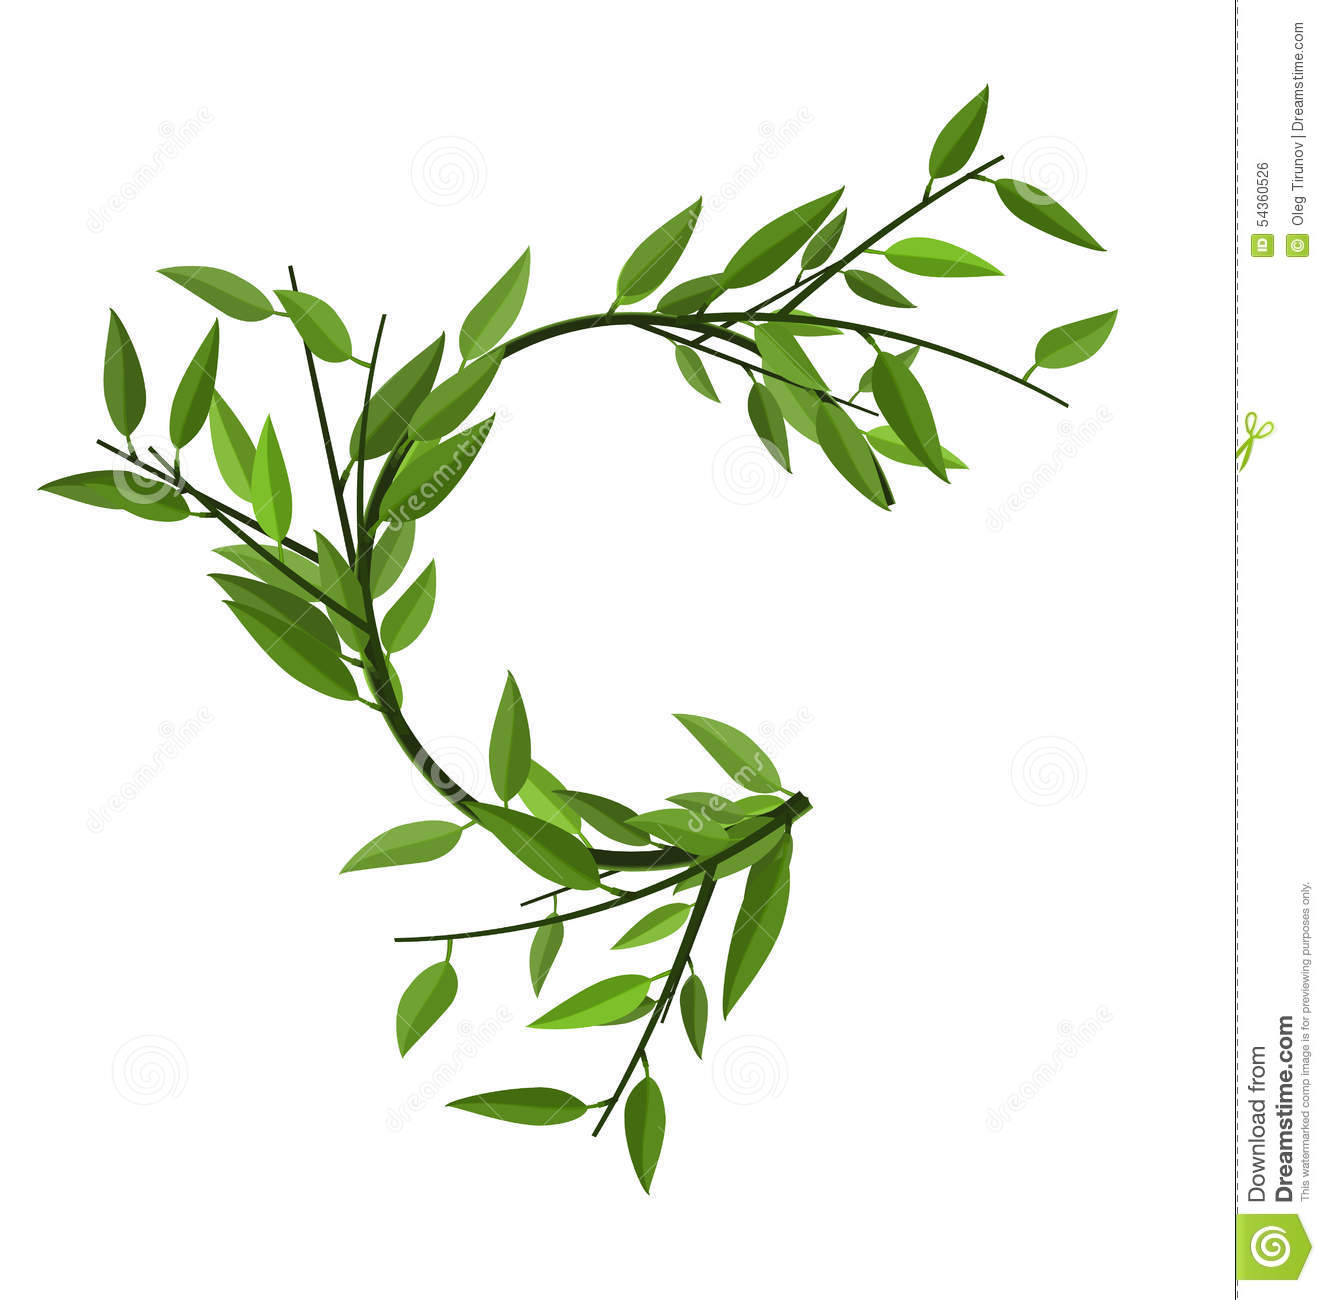 https://thumbs.dreamstime.com/z/curved-round-branch-bamboo-green-leaves-space-text-54360526.jpg